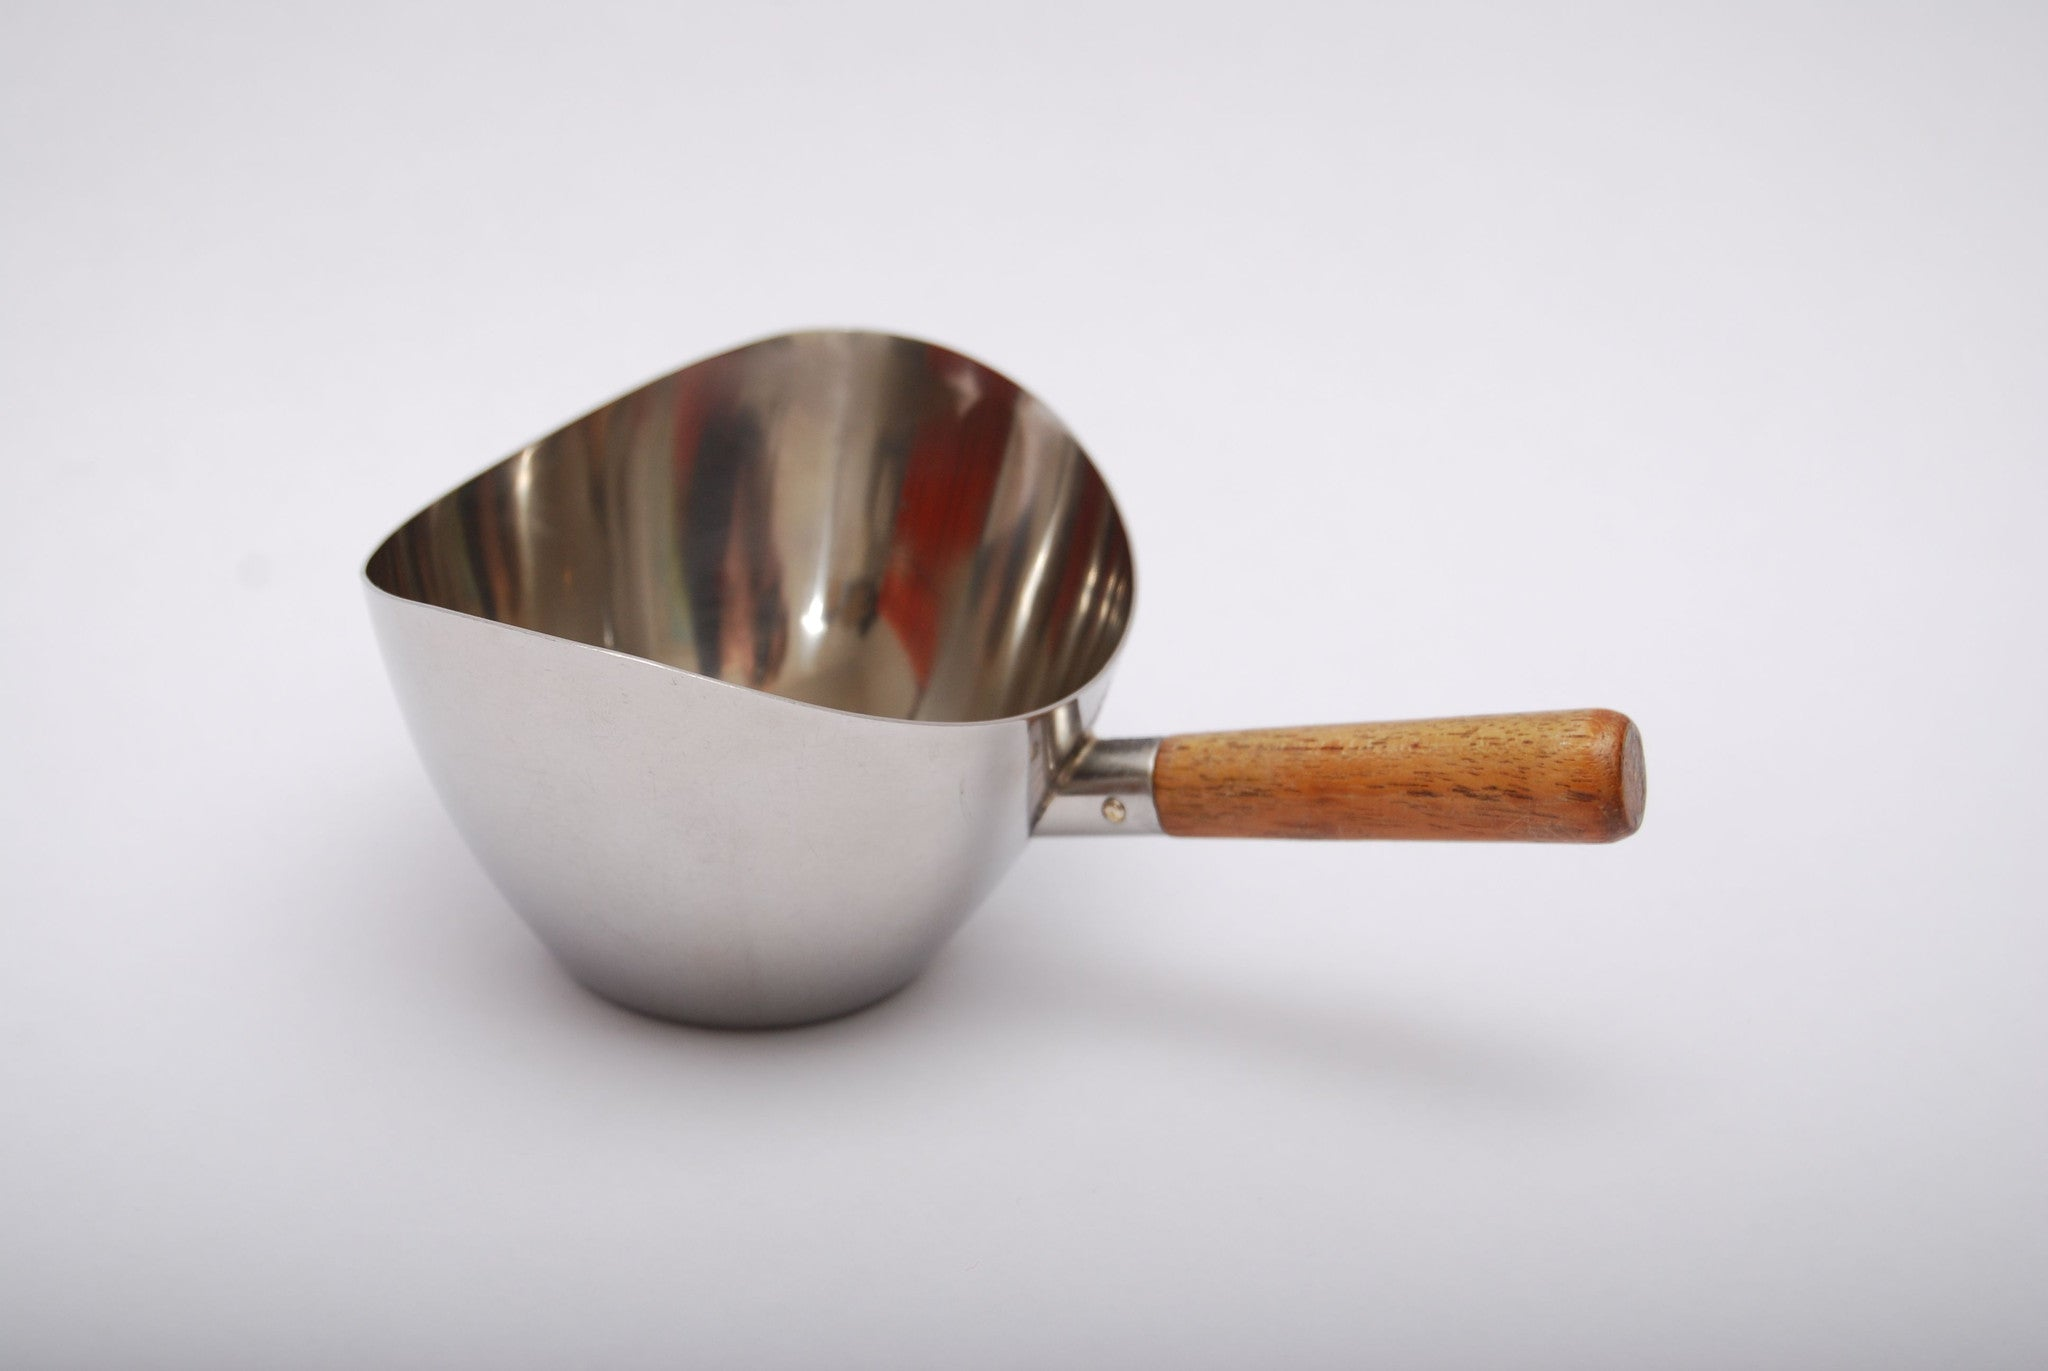 Stainless steel sauce boat